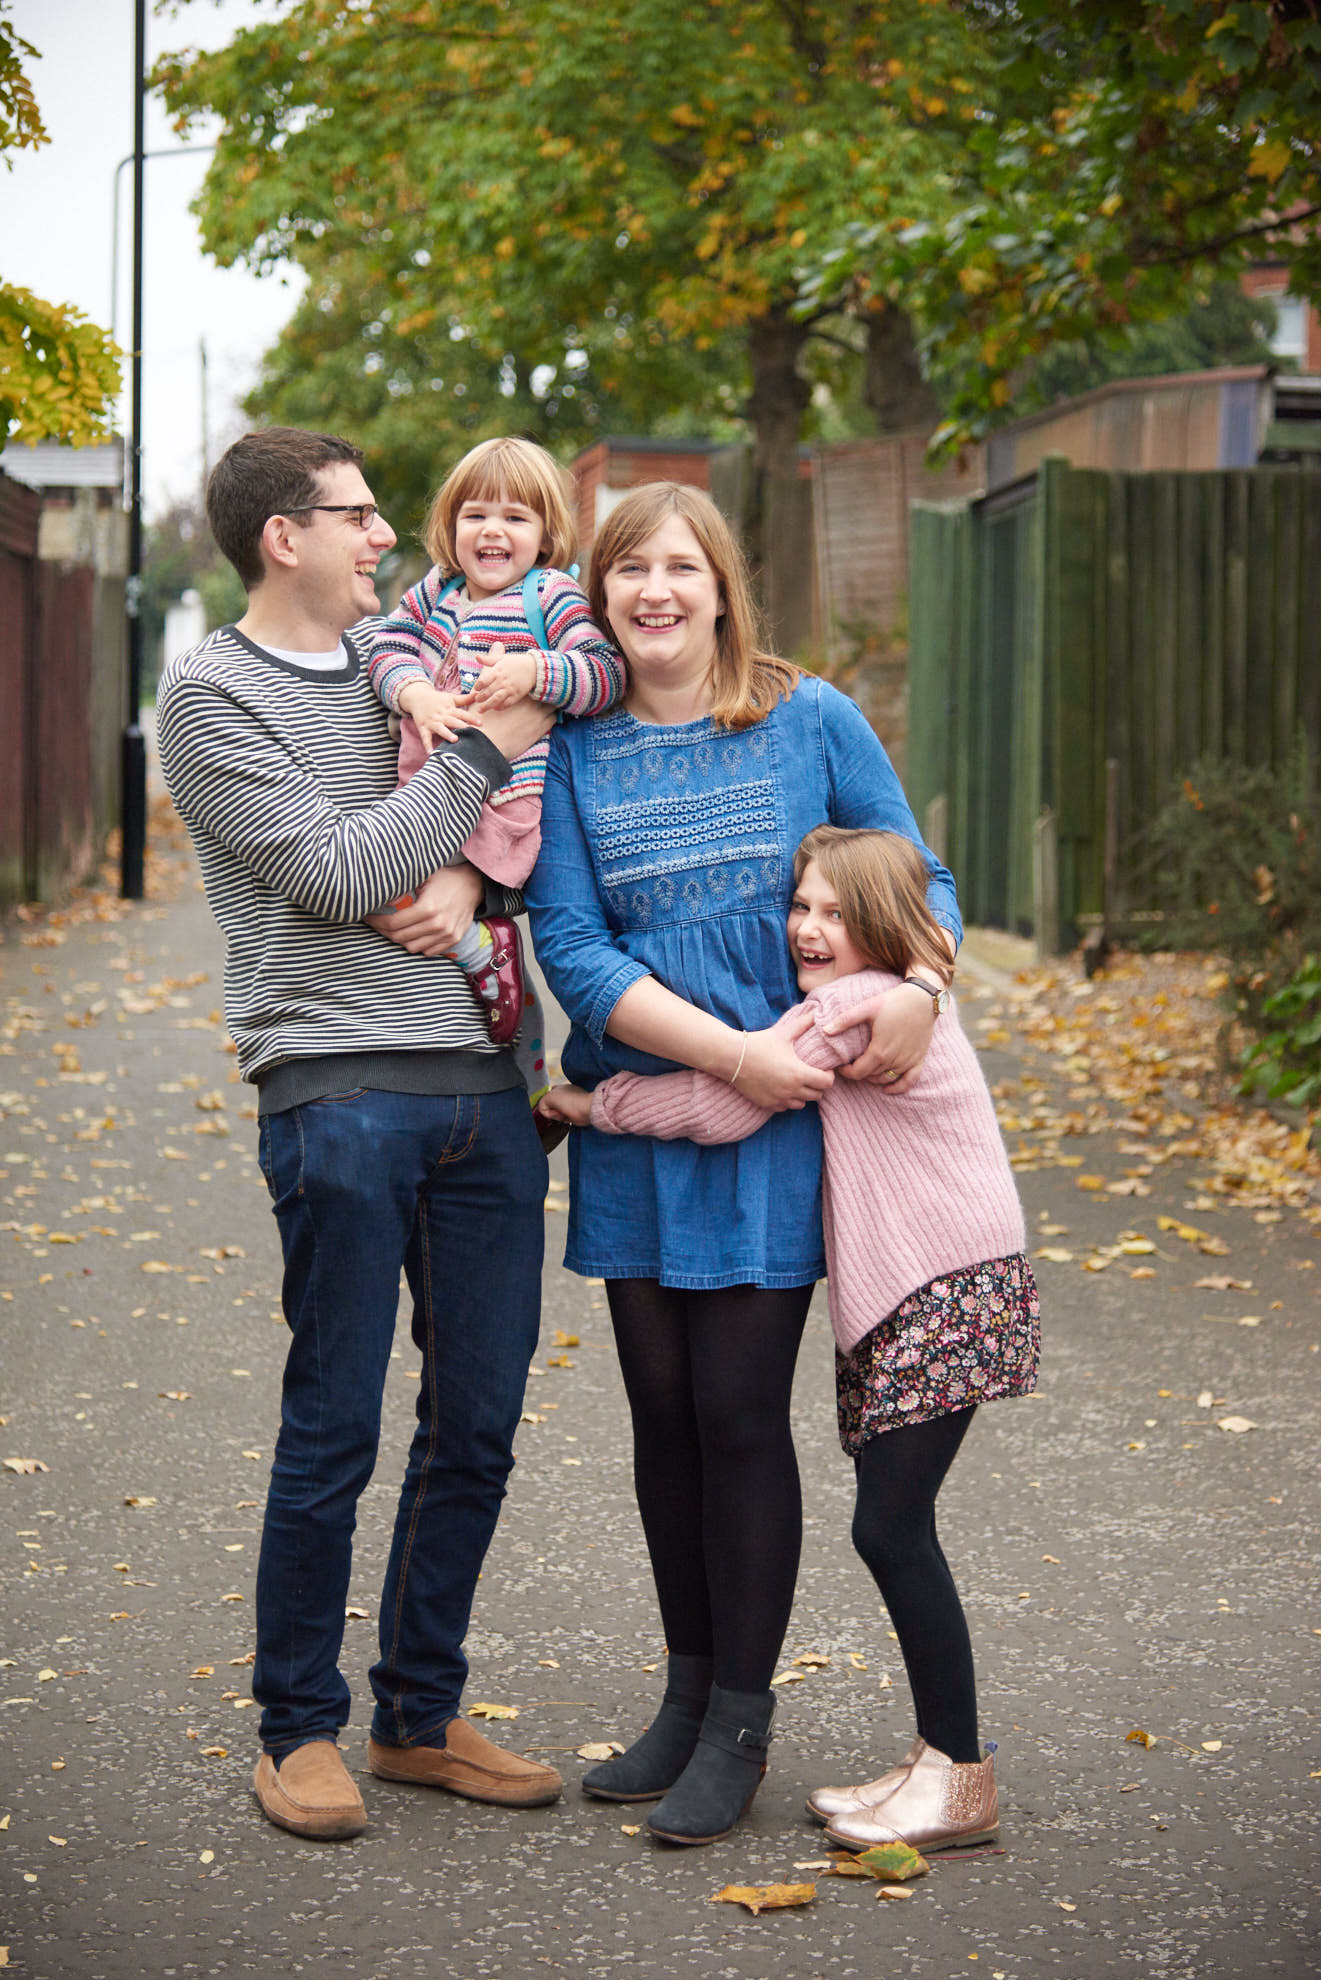 reportage style family photography in London